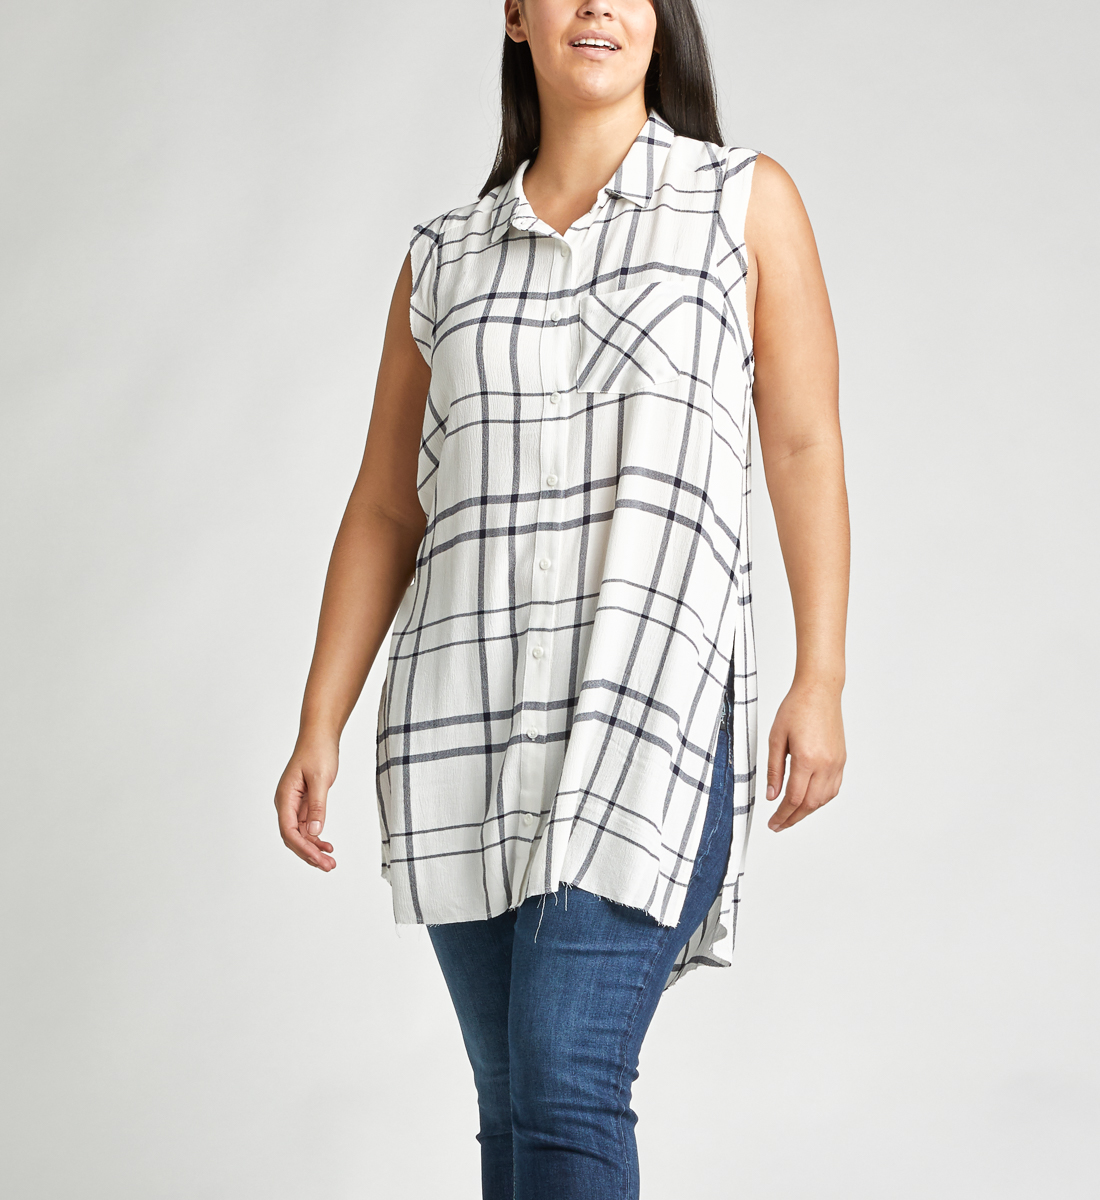 274d343336 Summer Plaid Frayed Button-Down Tunic - Silver Jeans CA